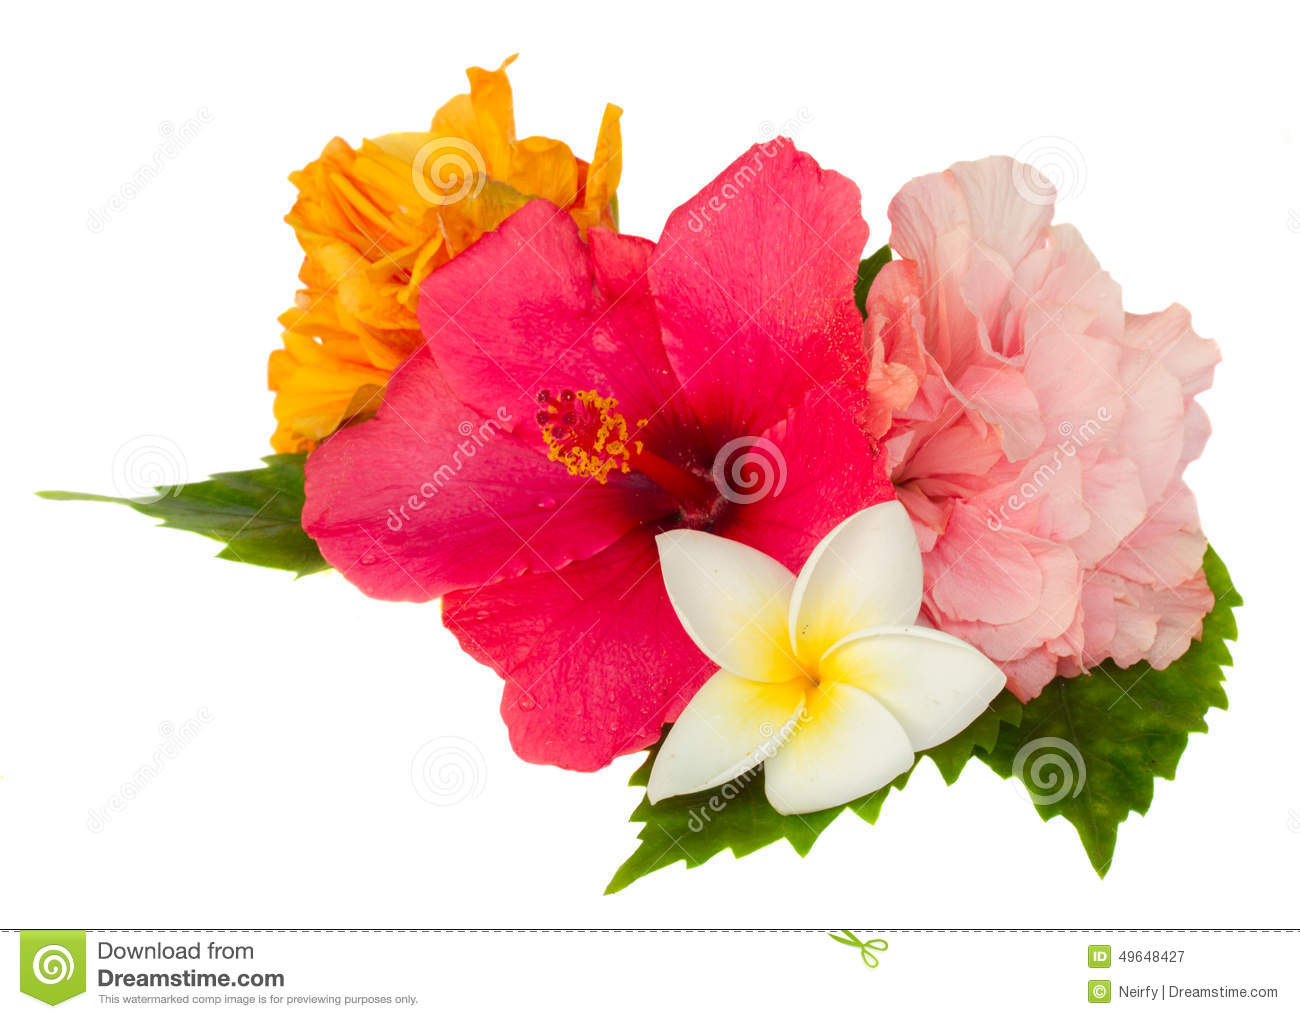 Colorful hibiscus flowers stock image. Image of floral - 49648427